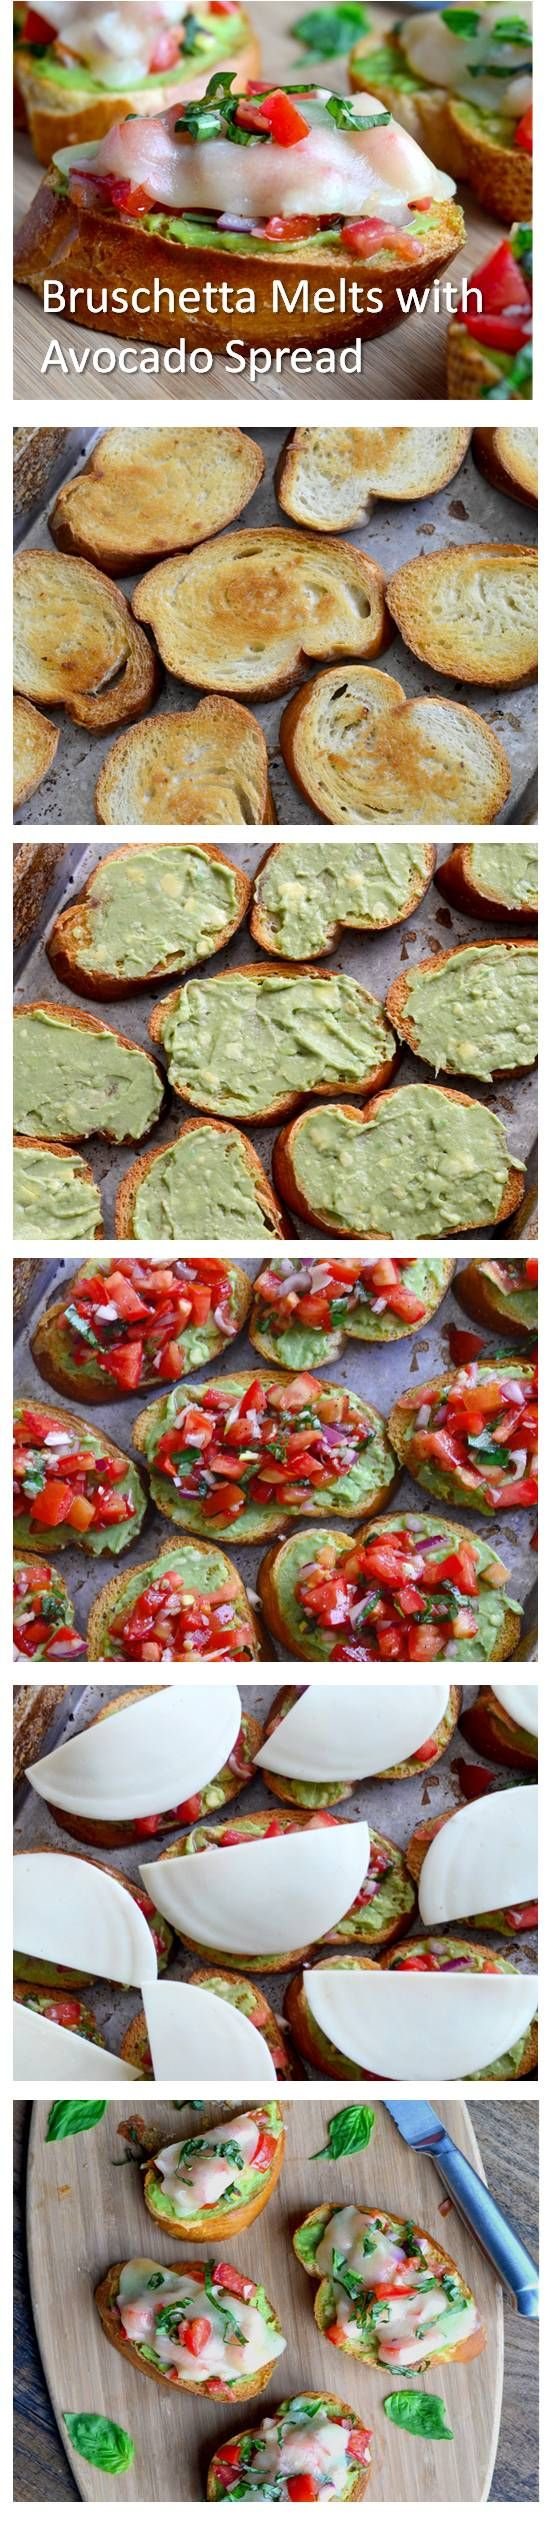 Italian Bruschetta Provolone Melts with Avocado Spread -=- From TheSpiceKitRecipes.com, BRAVO !!